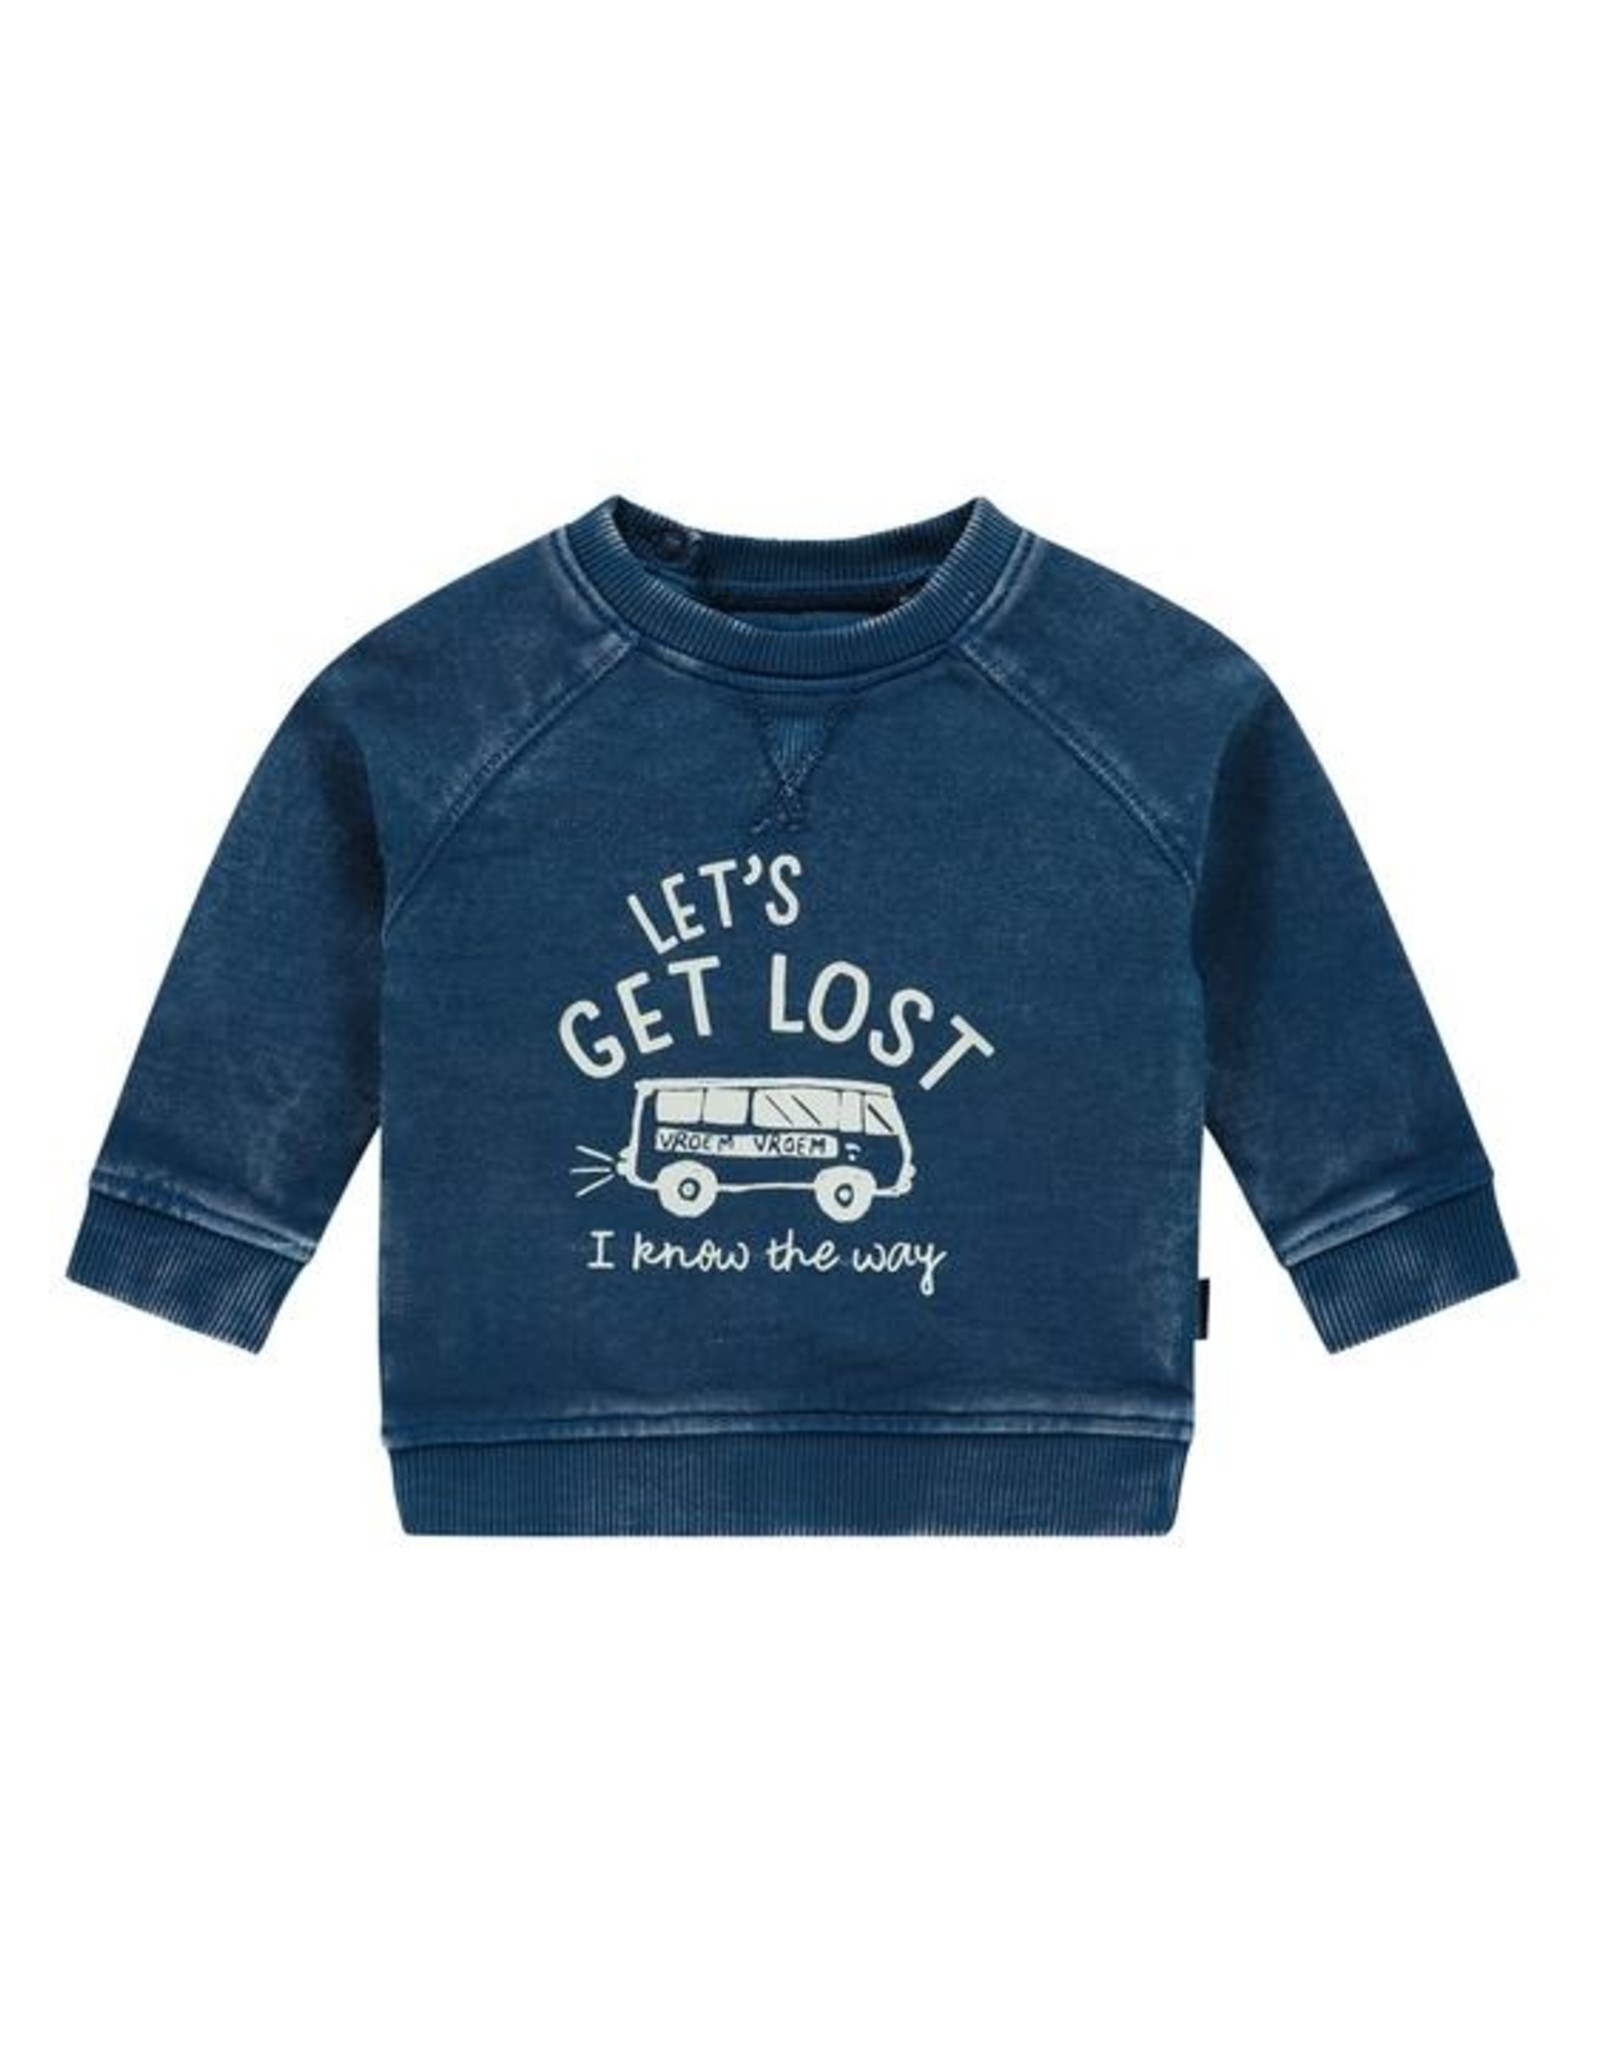 Noppies Noppies SS20 blue lets get lost sweater